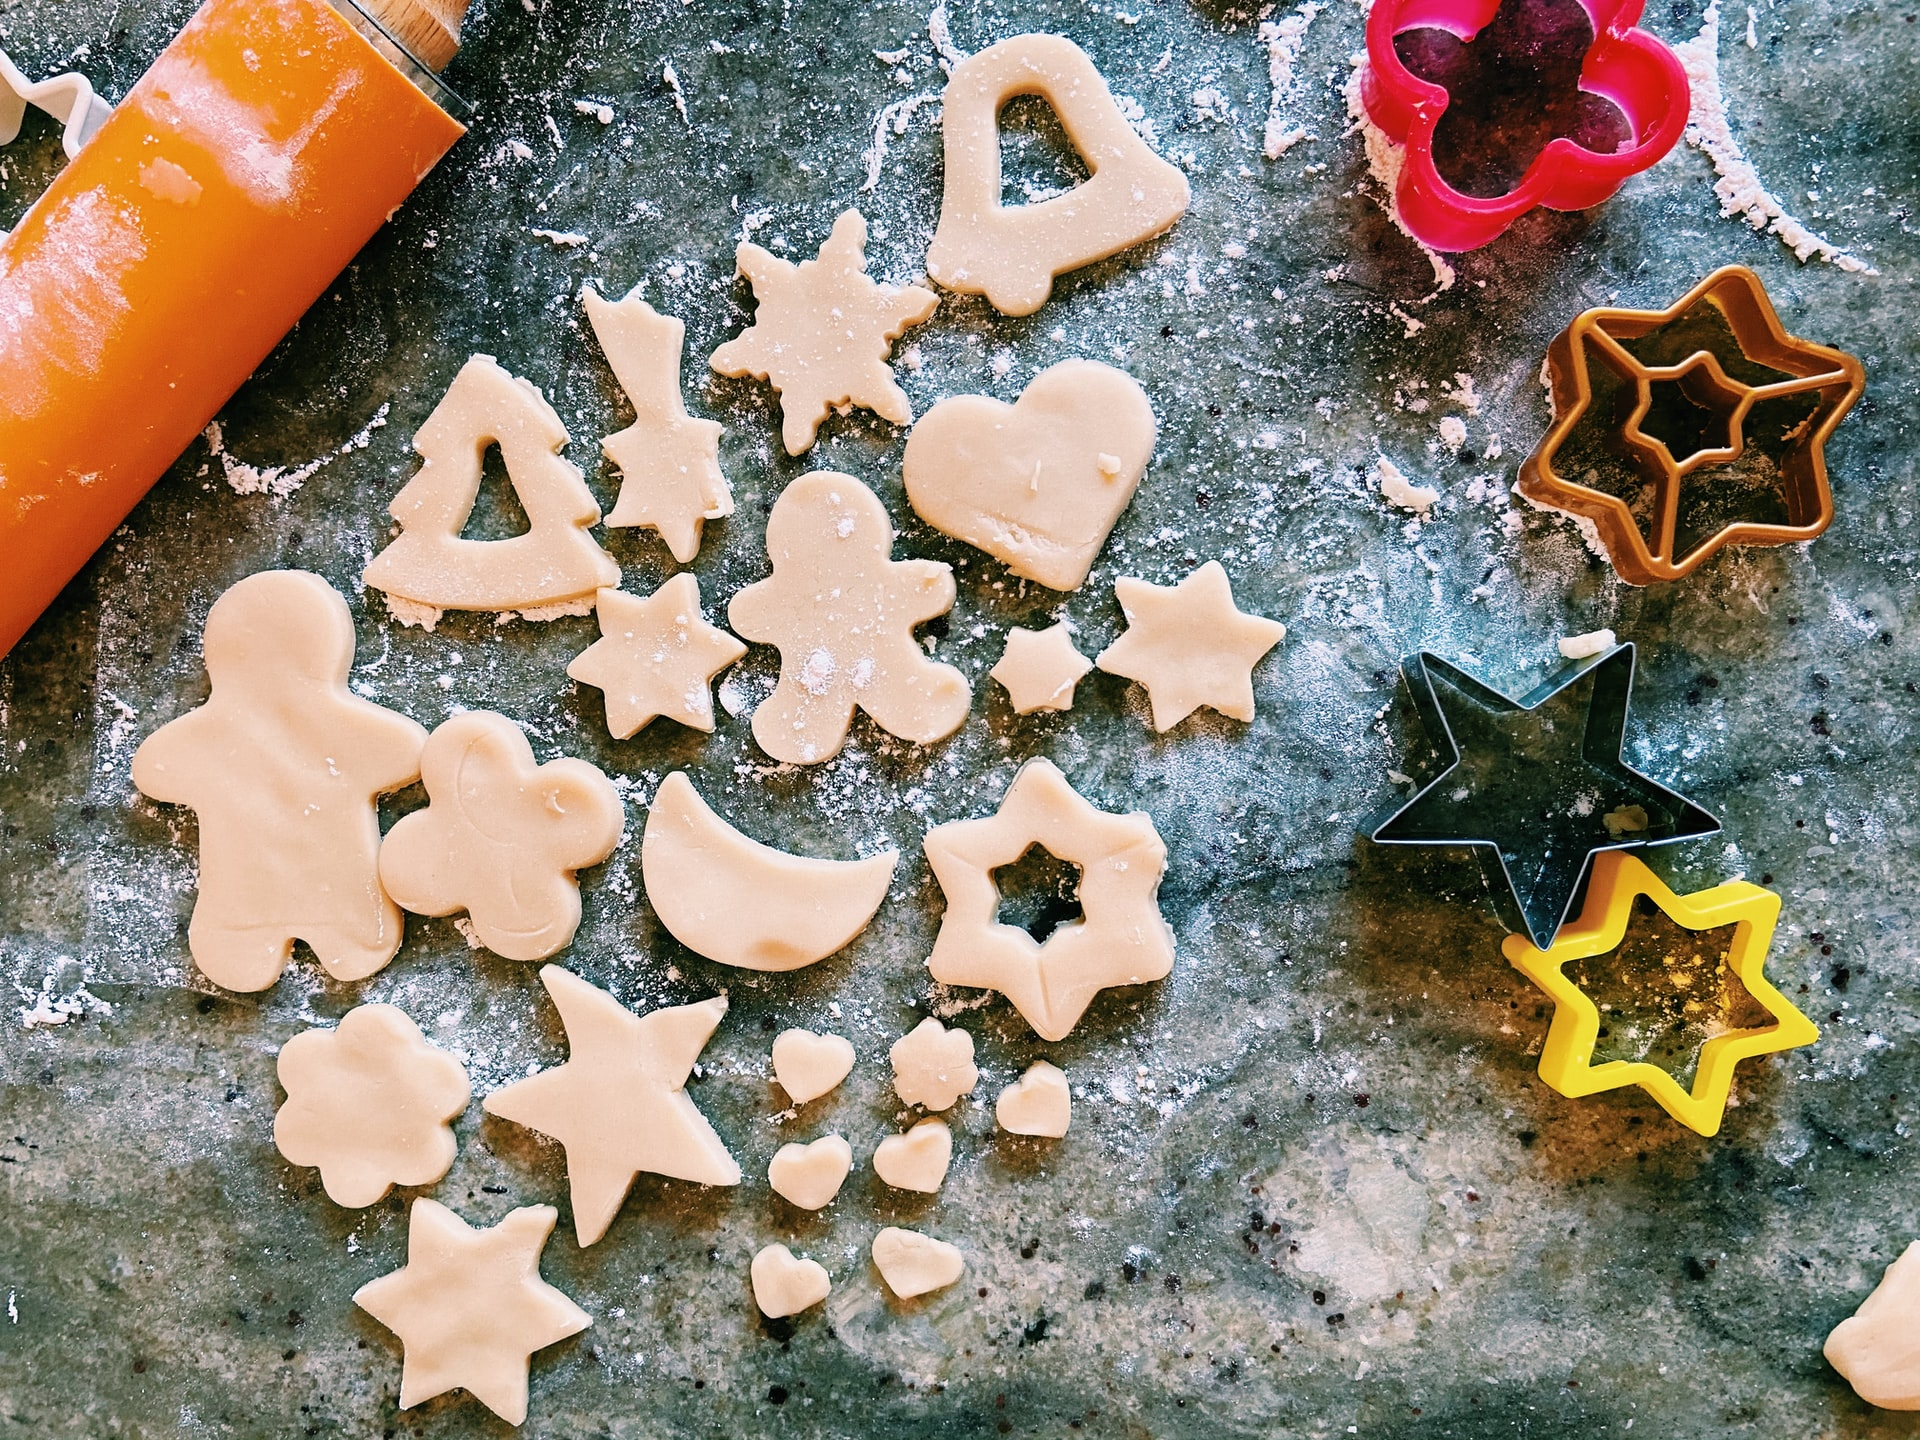 Set Yourself Up for Holiday Cookie Success in Your Aberdeen Apartment With These Kitchen Organizing Tips